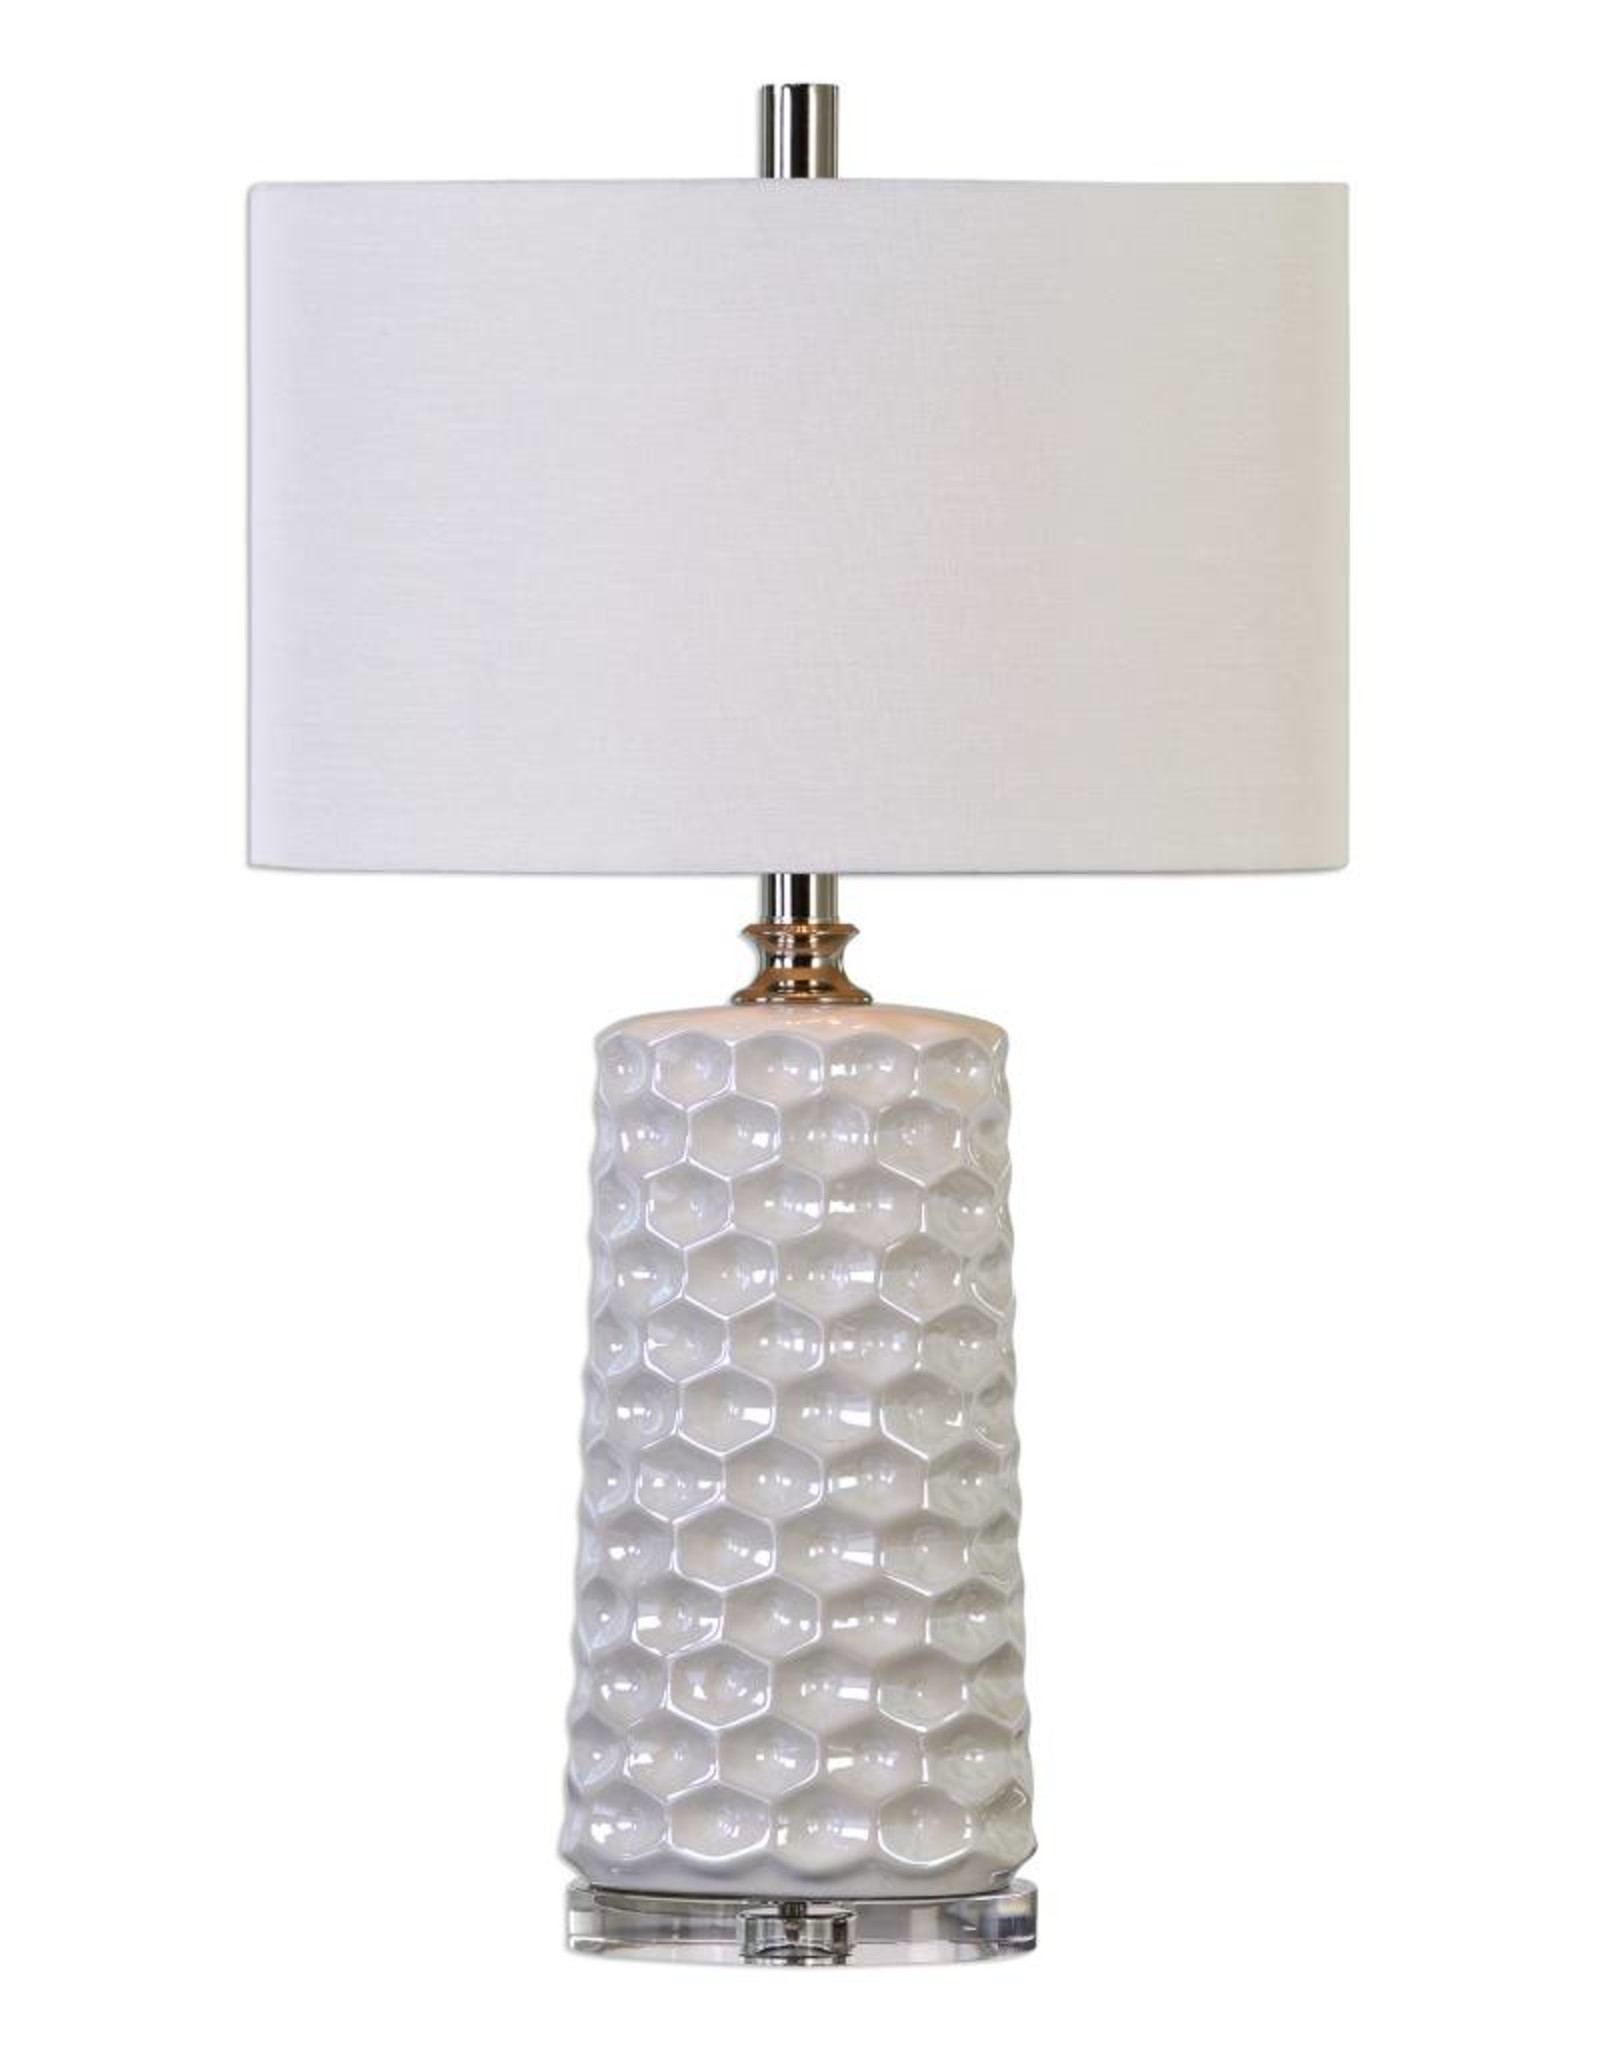 Sesia Honeycomb Table Lamp